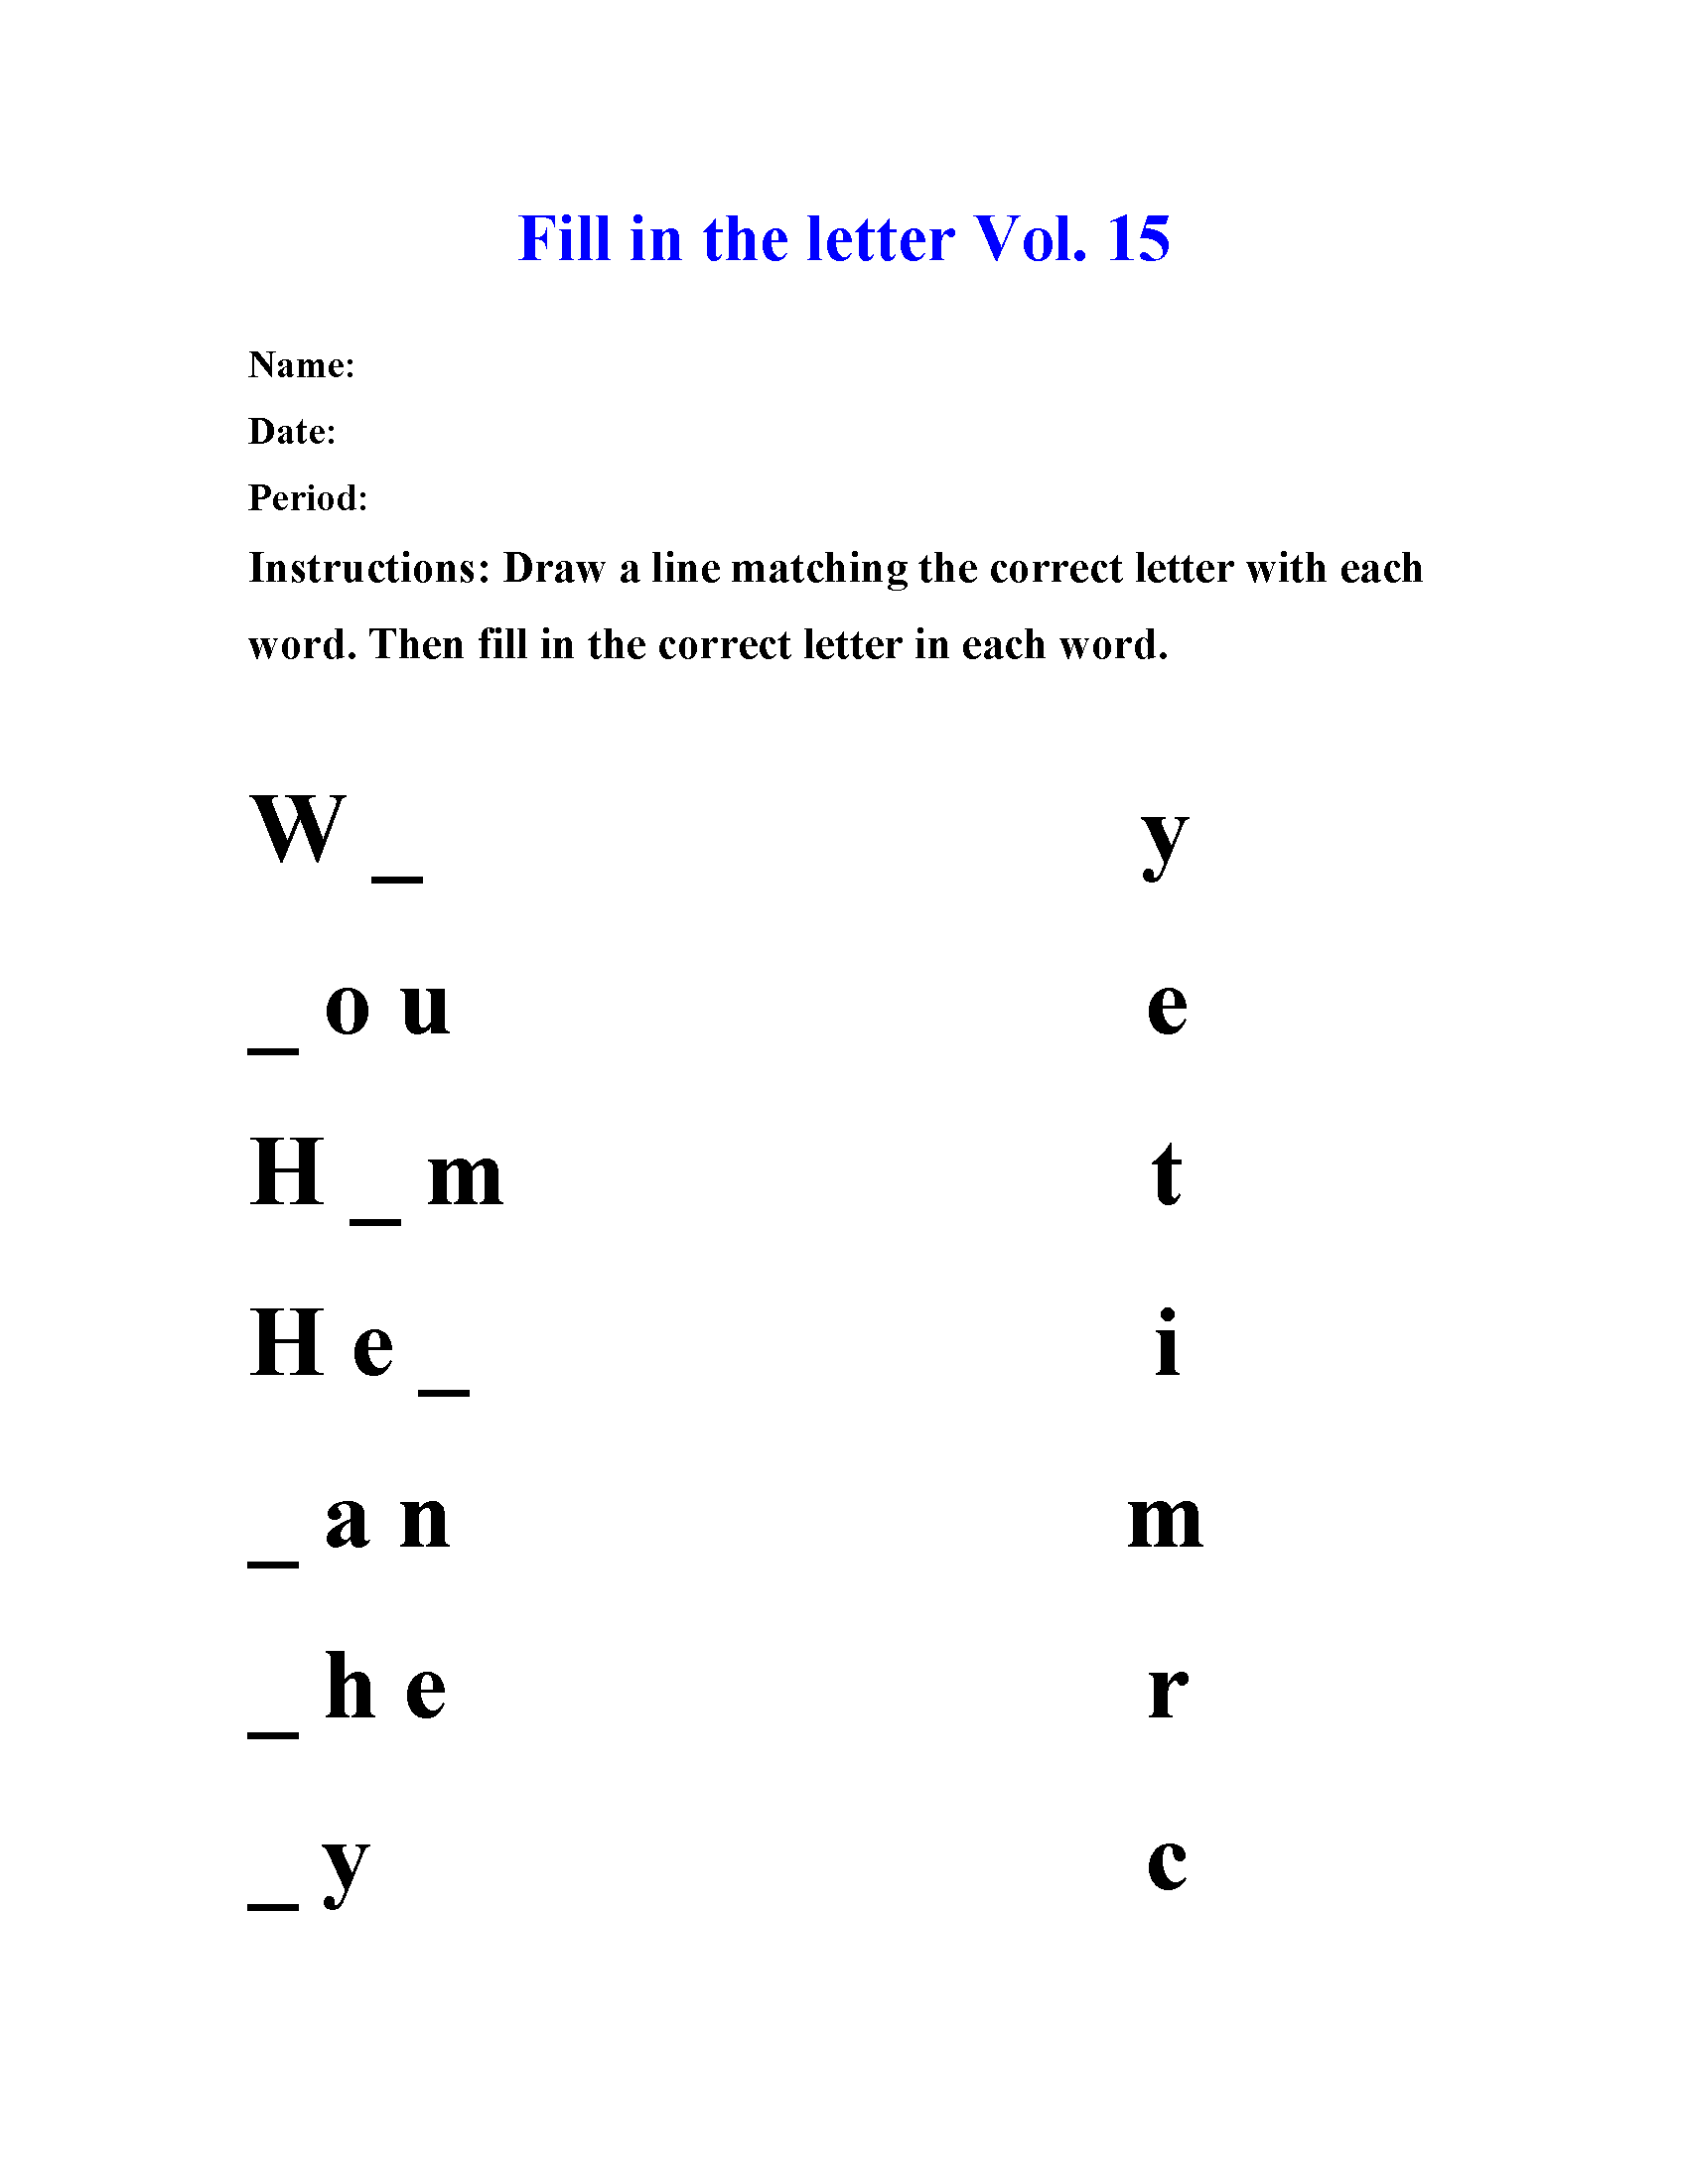 Fill in the letter Vol 15